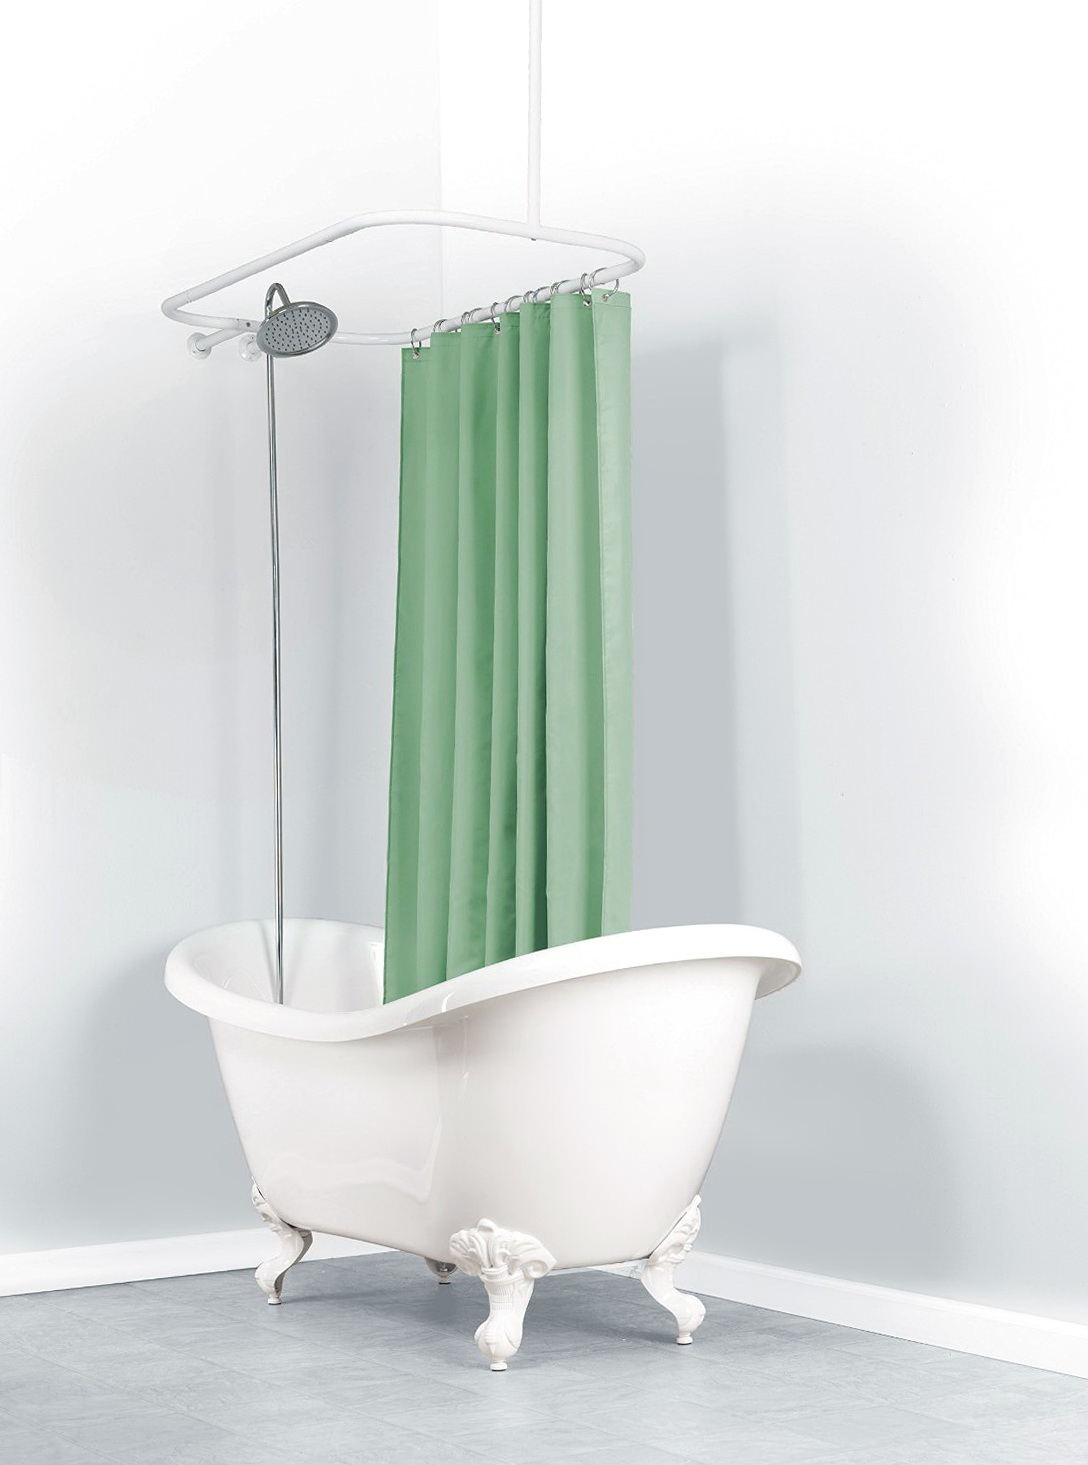 Claw Tub Shower Curtain Rod